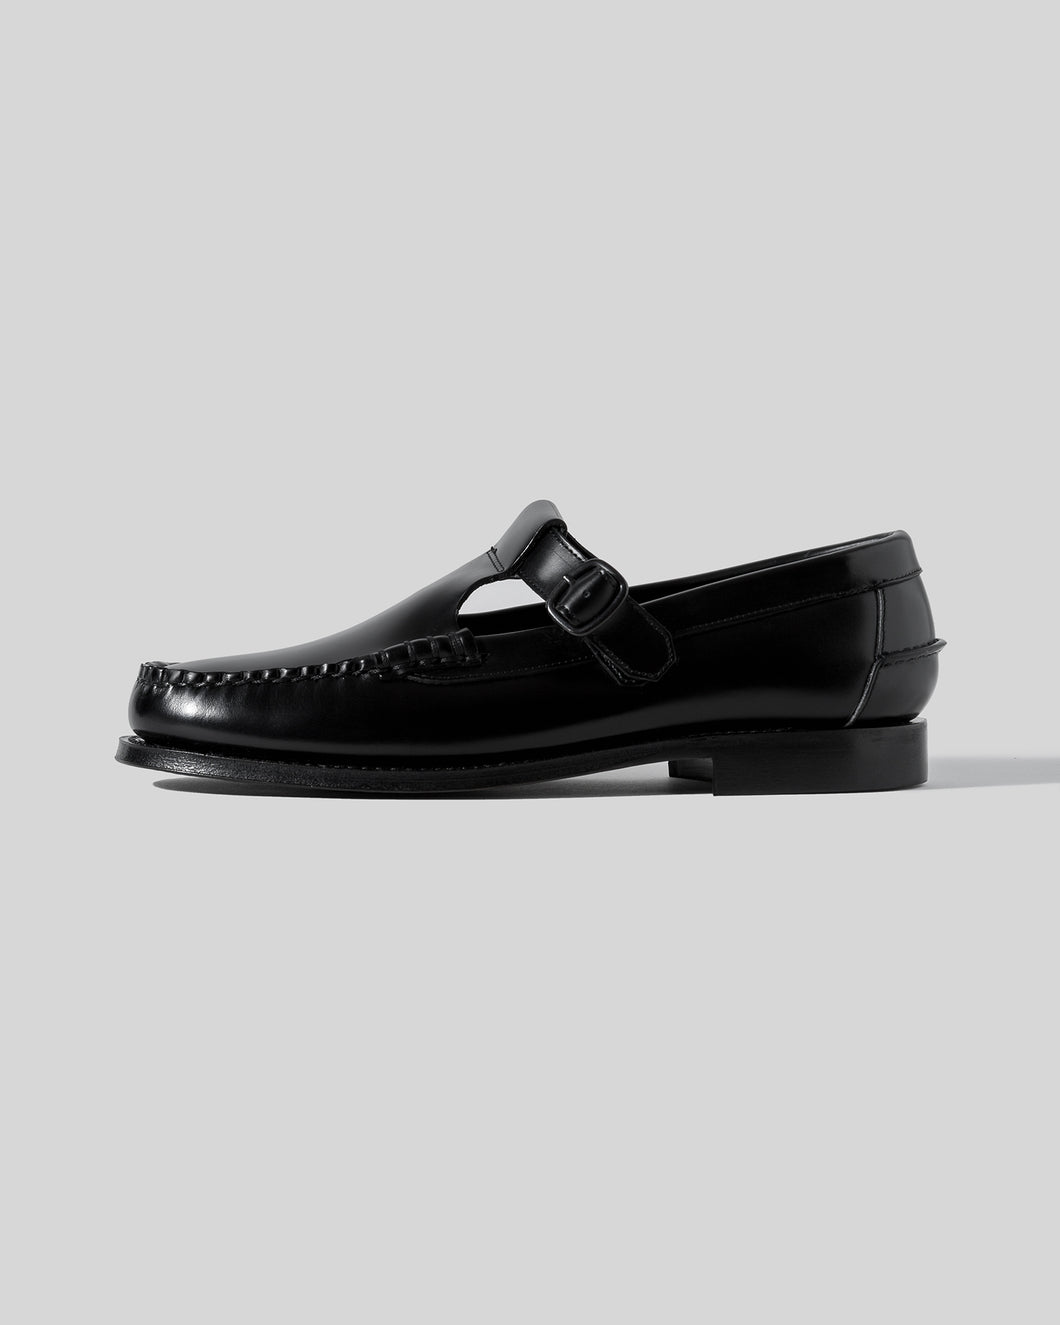 ALBER - Men's T-bar Loafer